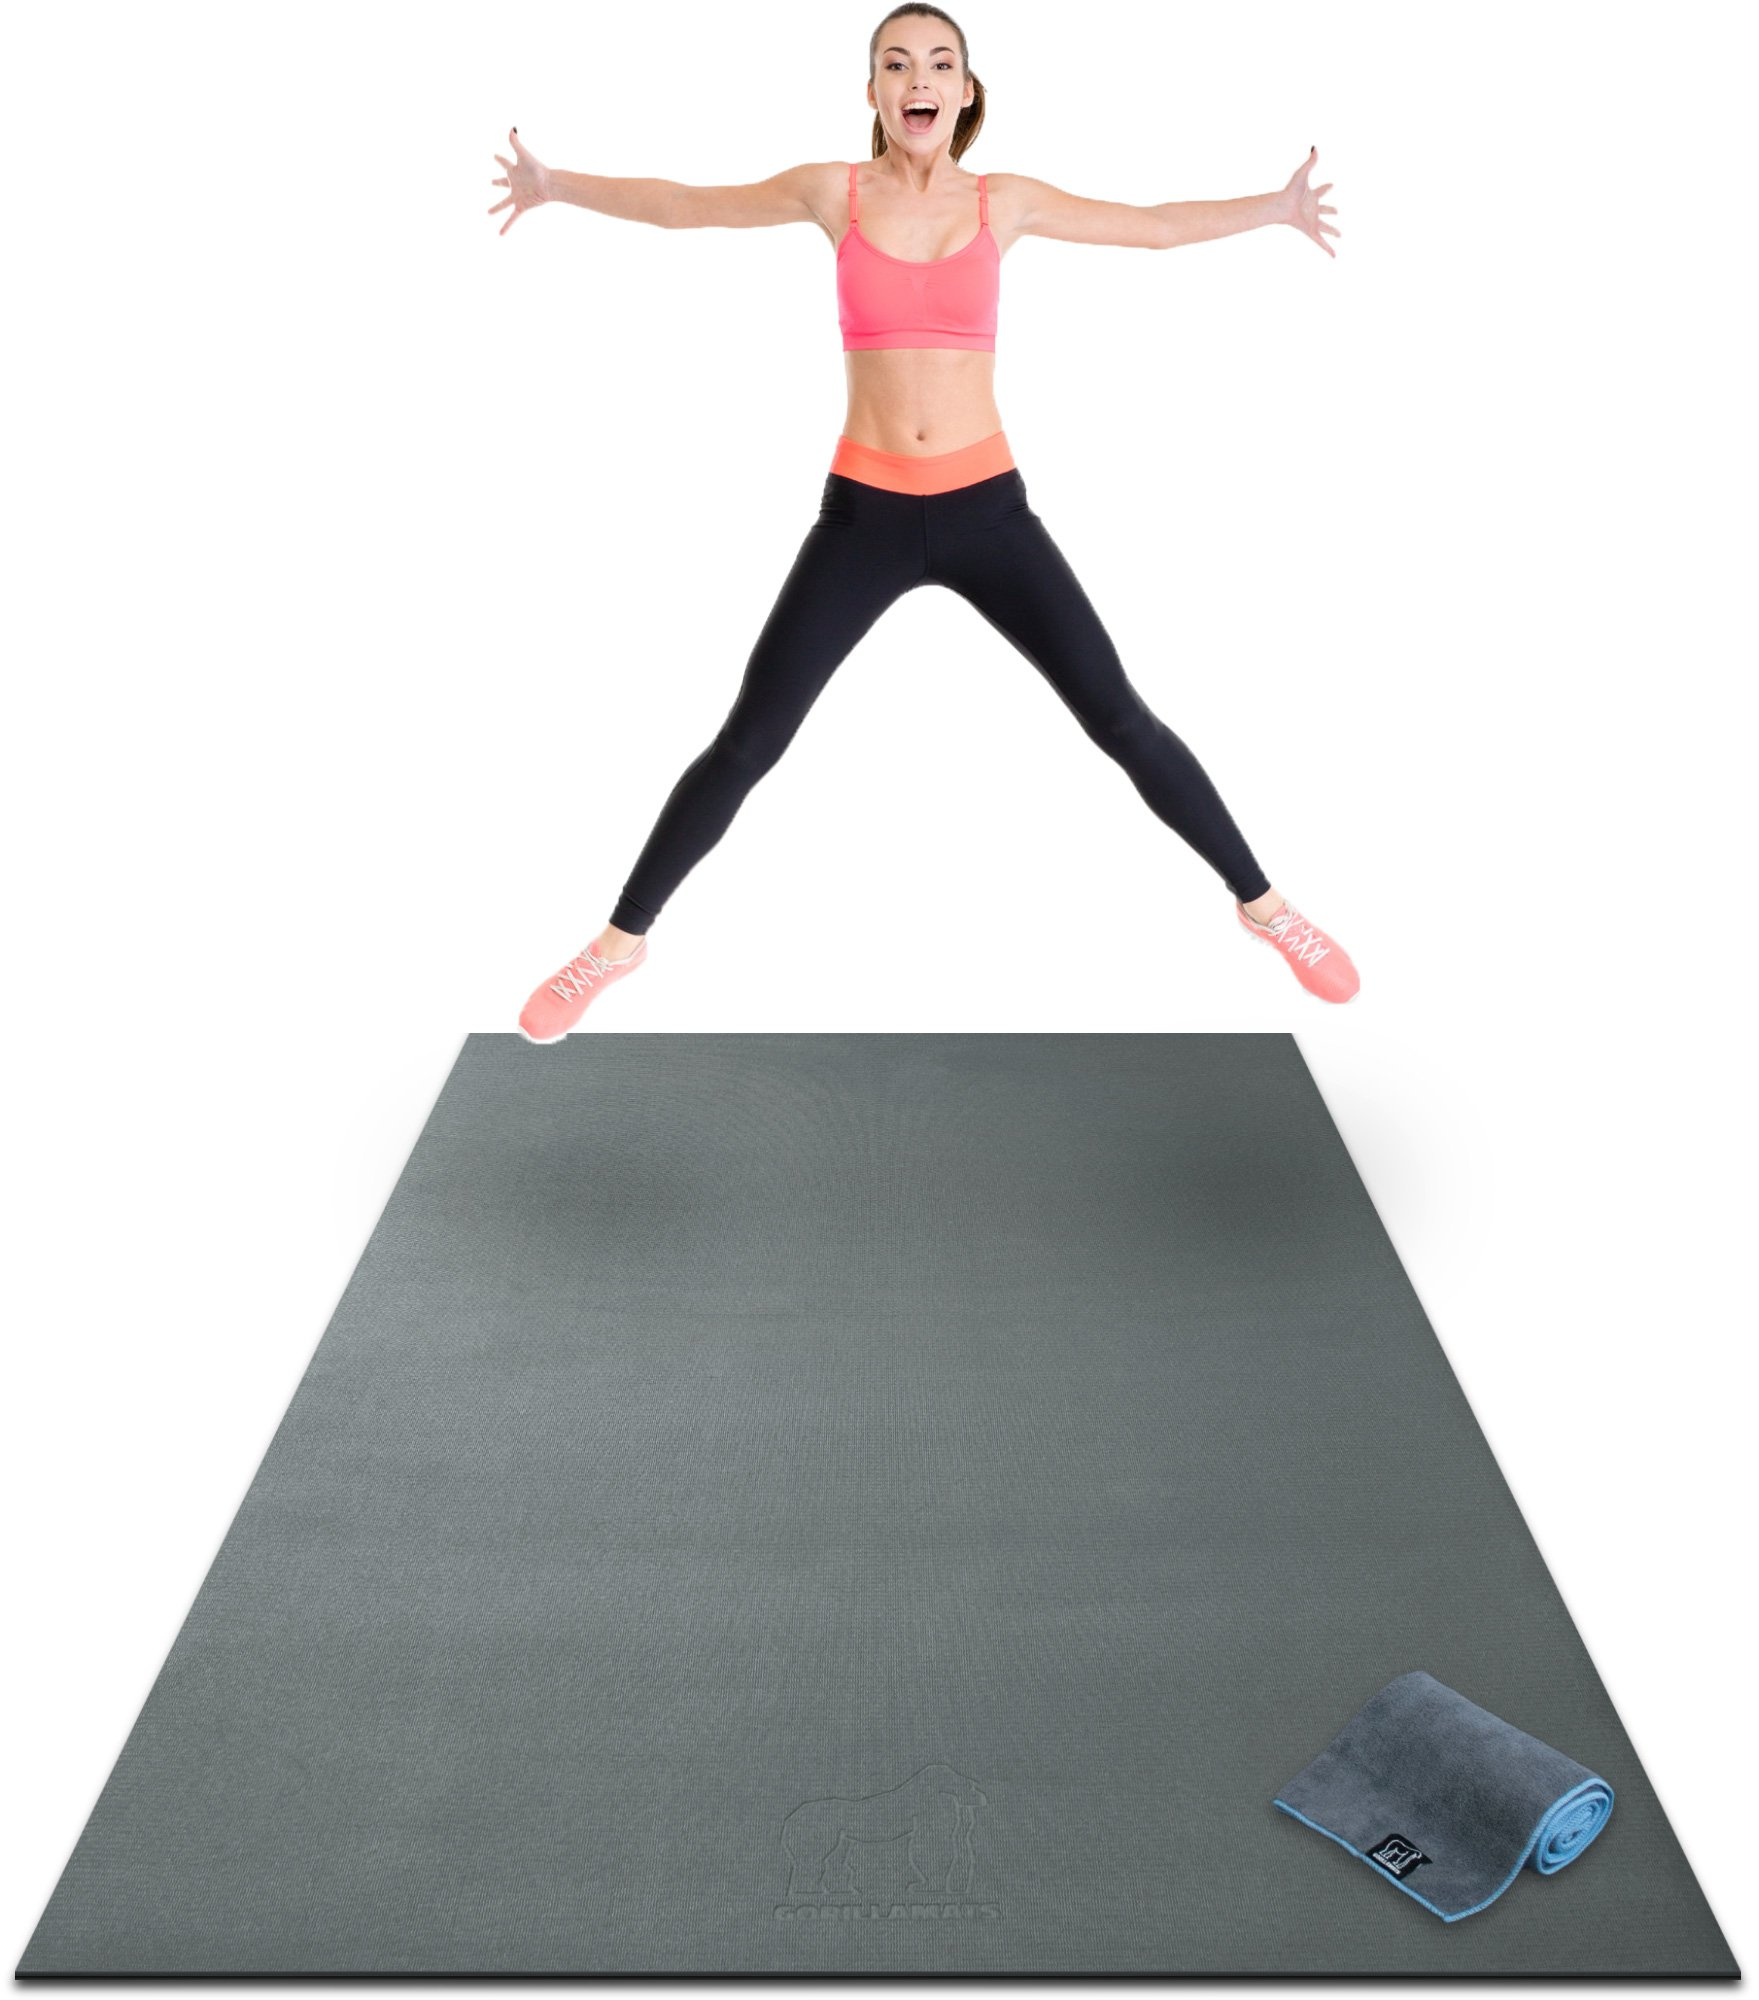 Premium Extra Large Exercise Mat - 8' x 4' x 1/4'' Ultra Durable, Non-Slip, Workout Mats for Home Gym Flooring - Jump, Cardio, MMA Mat - Use with or Without Shoes (96'' Long x 48'' Wide x 6mm Thick)